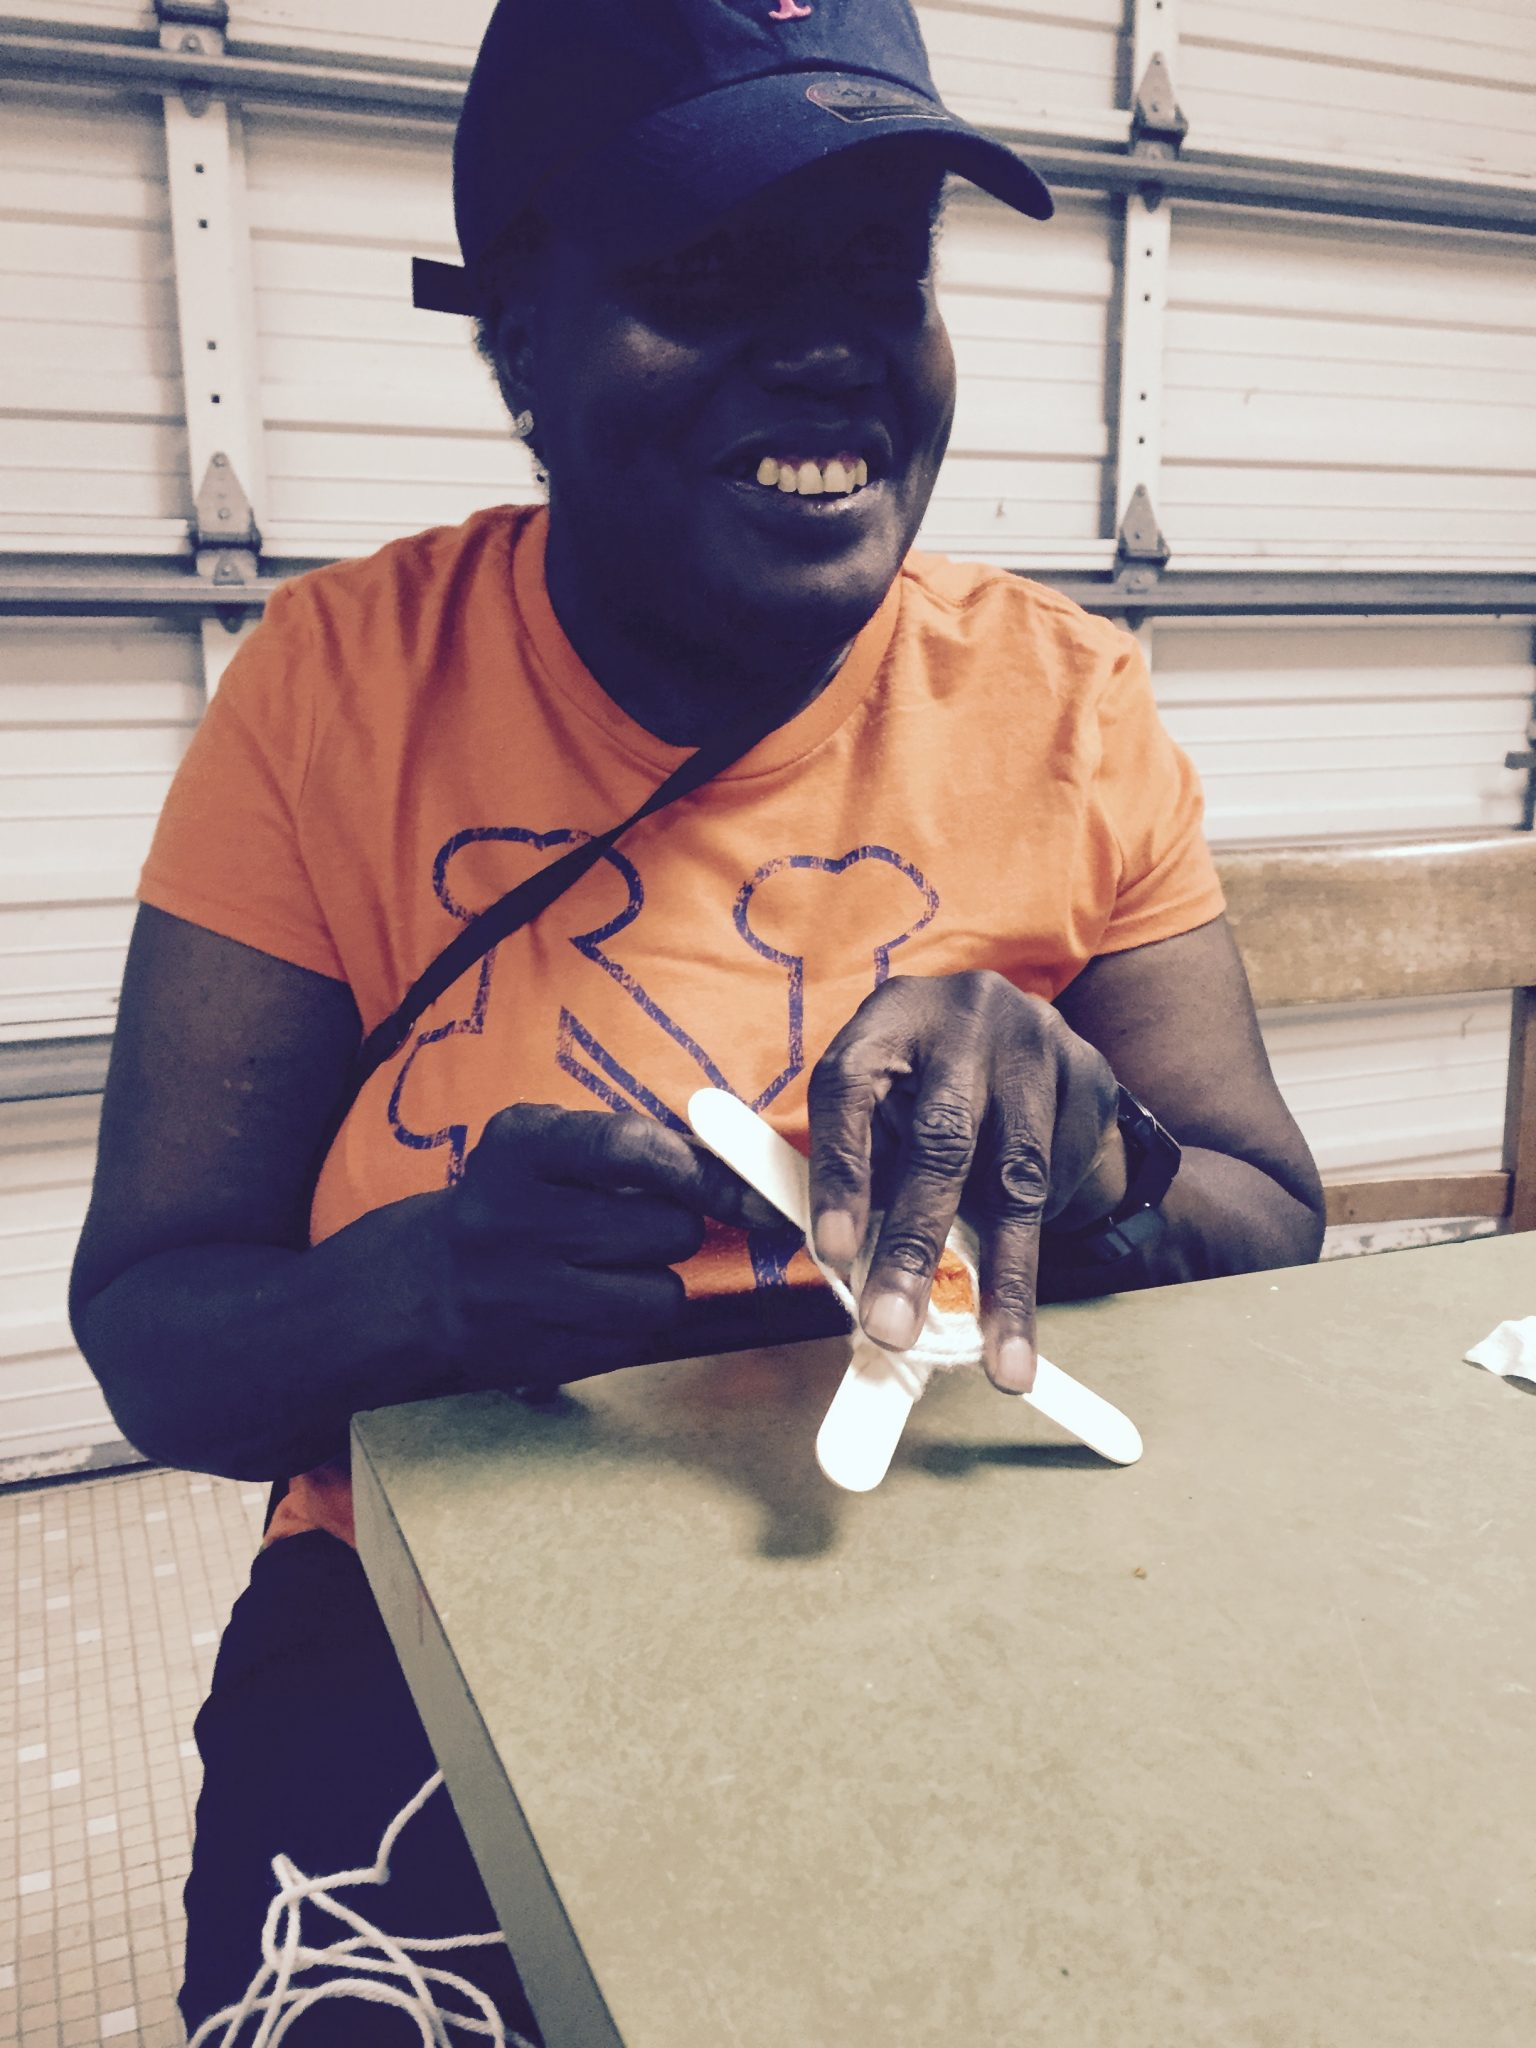 Senior Center - BS crafts - lady crafting a god's eye with yarn and tongue depressors